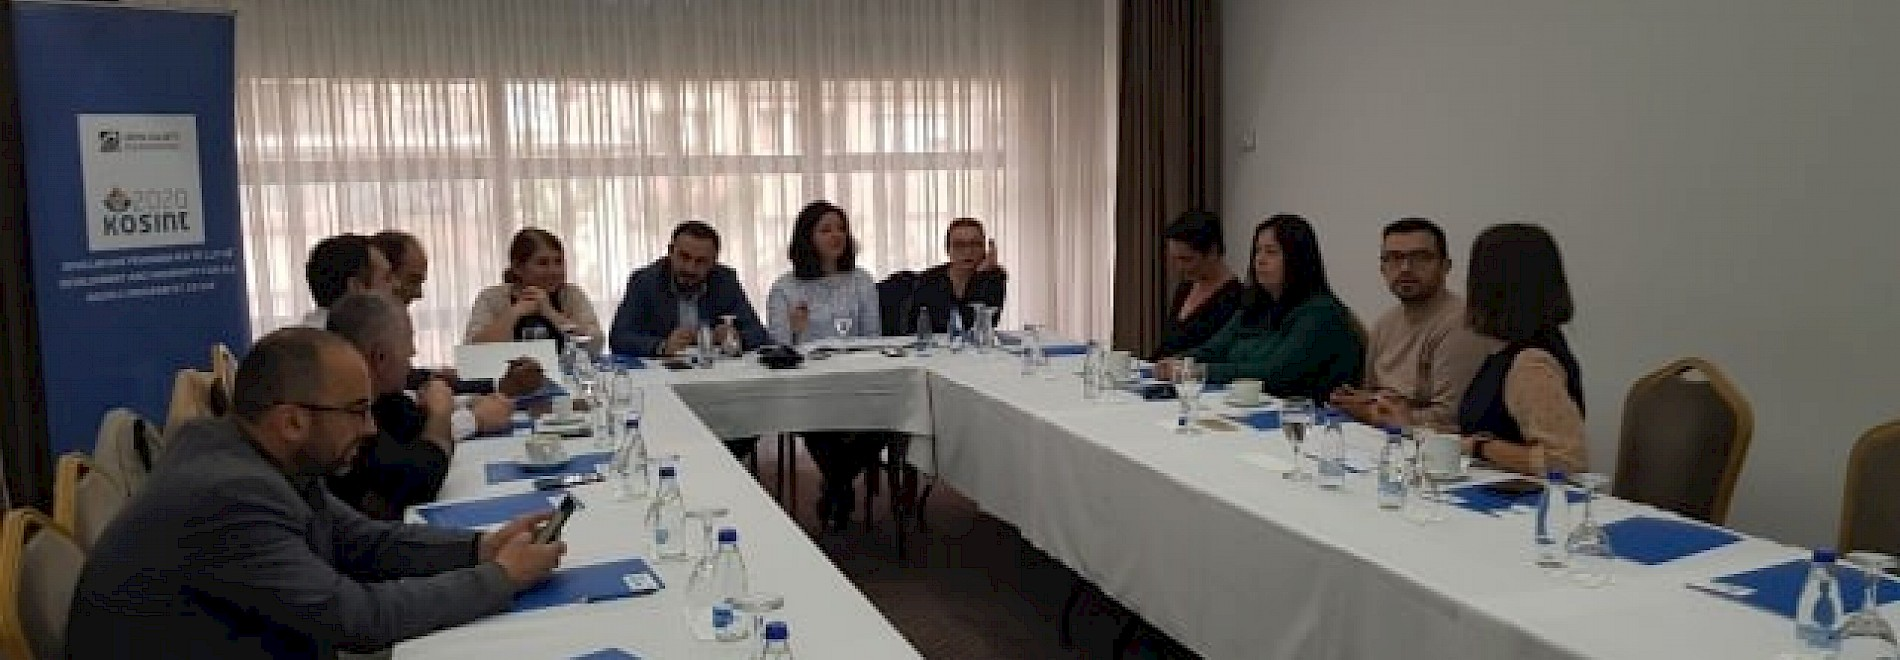 Public discussion on the issue related to housing policies for Roma, Ashkali and Egyptian communities in Kosova